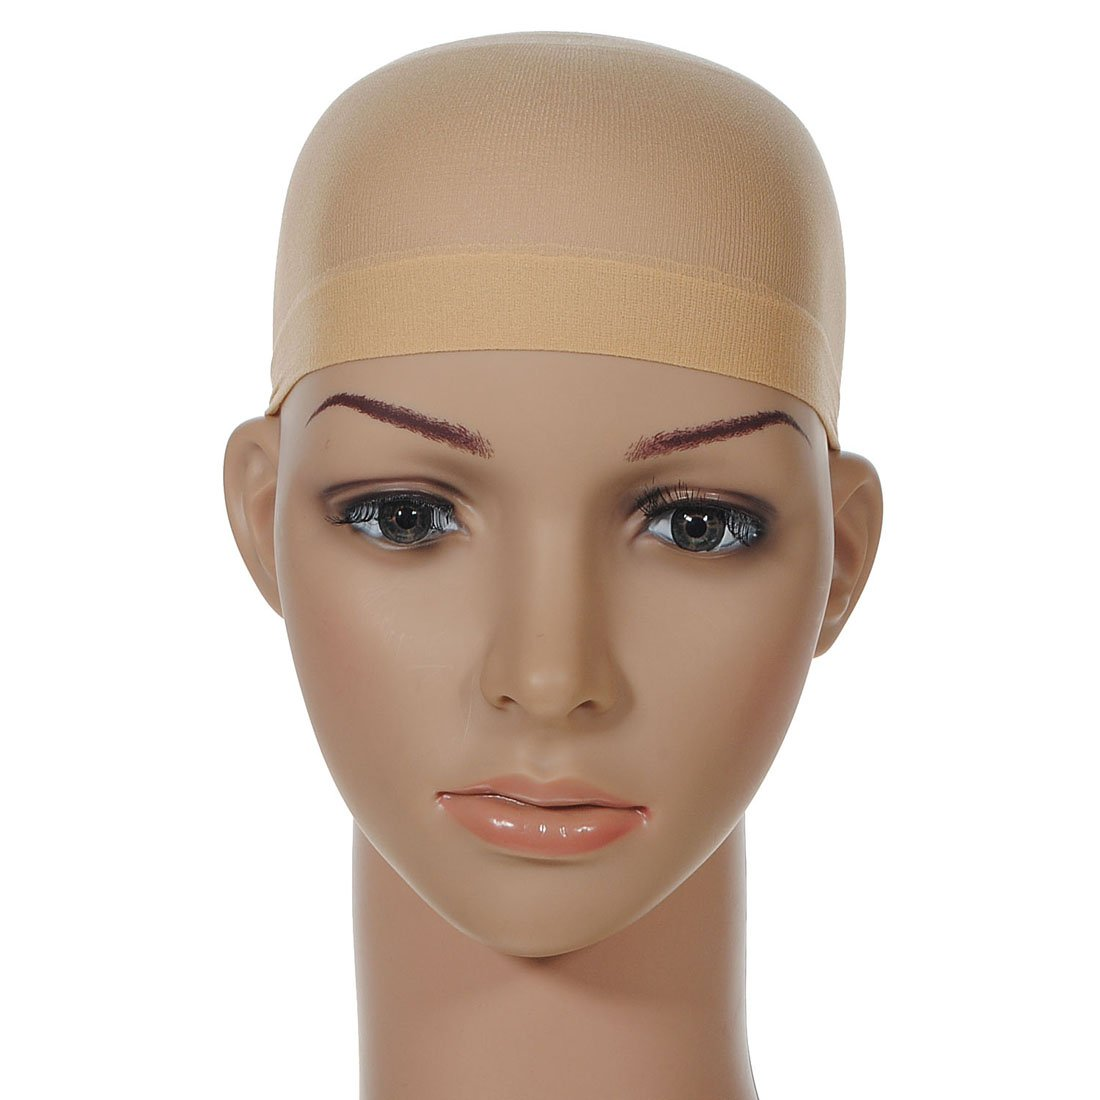 Allsorts® Pack Of 2 Blonde Nude Wig Caps Hair Cap by Amazon